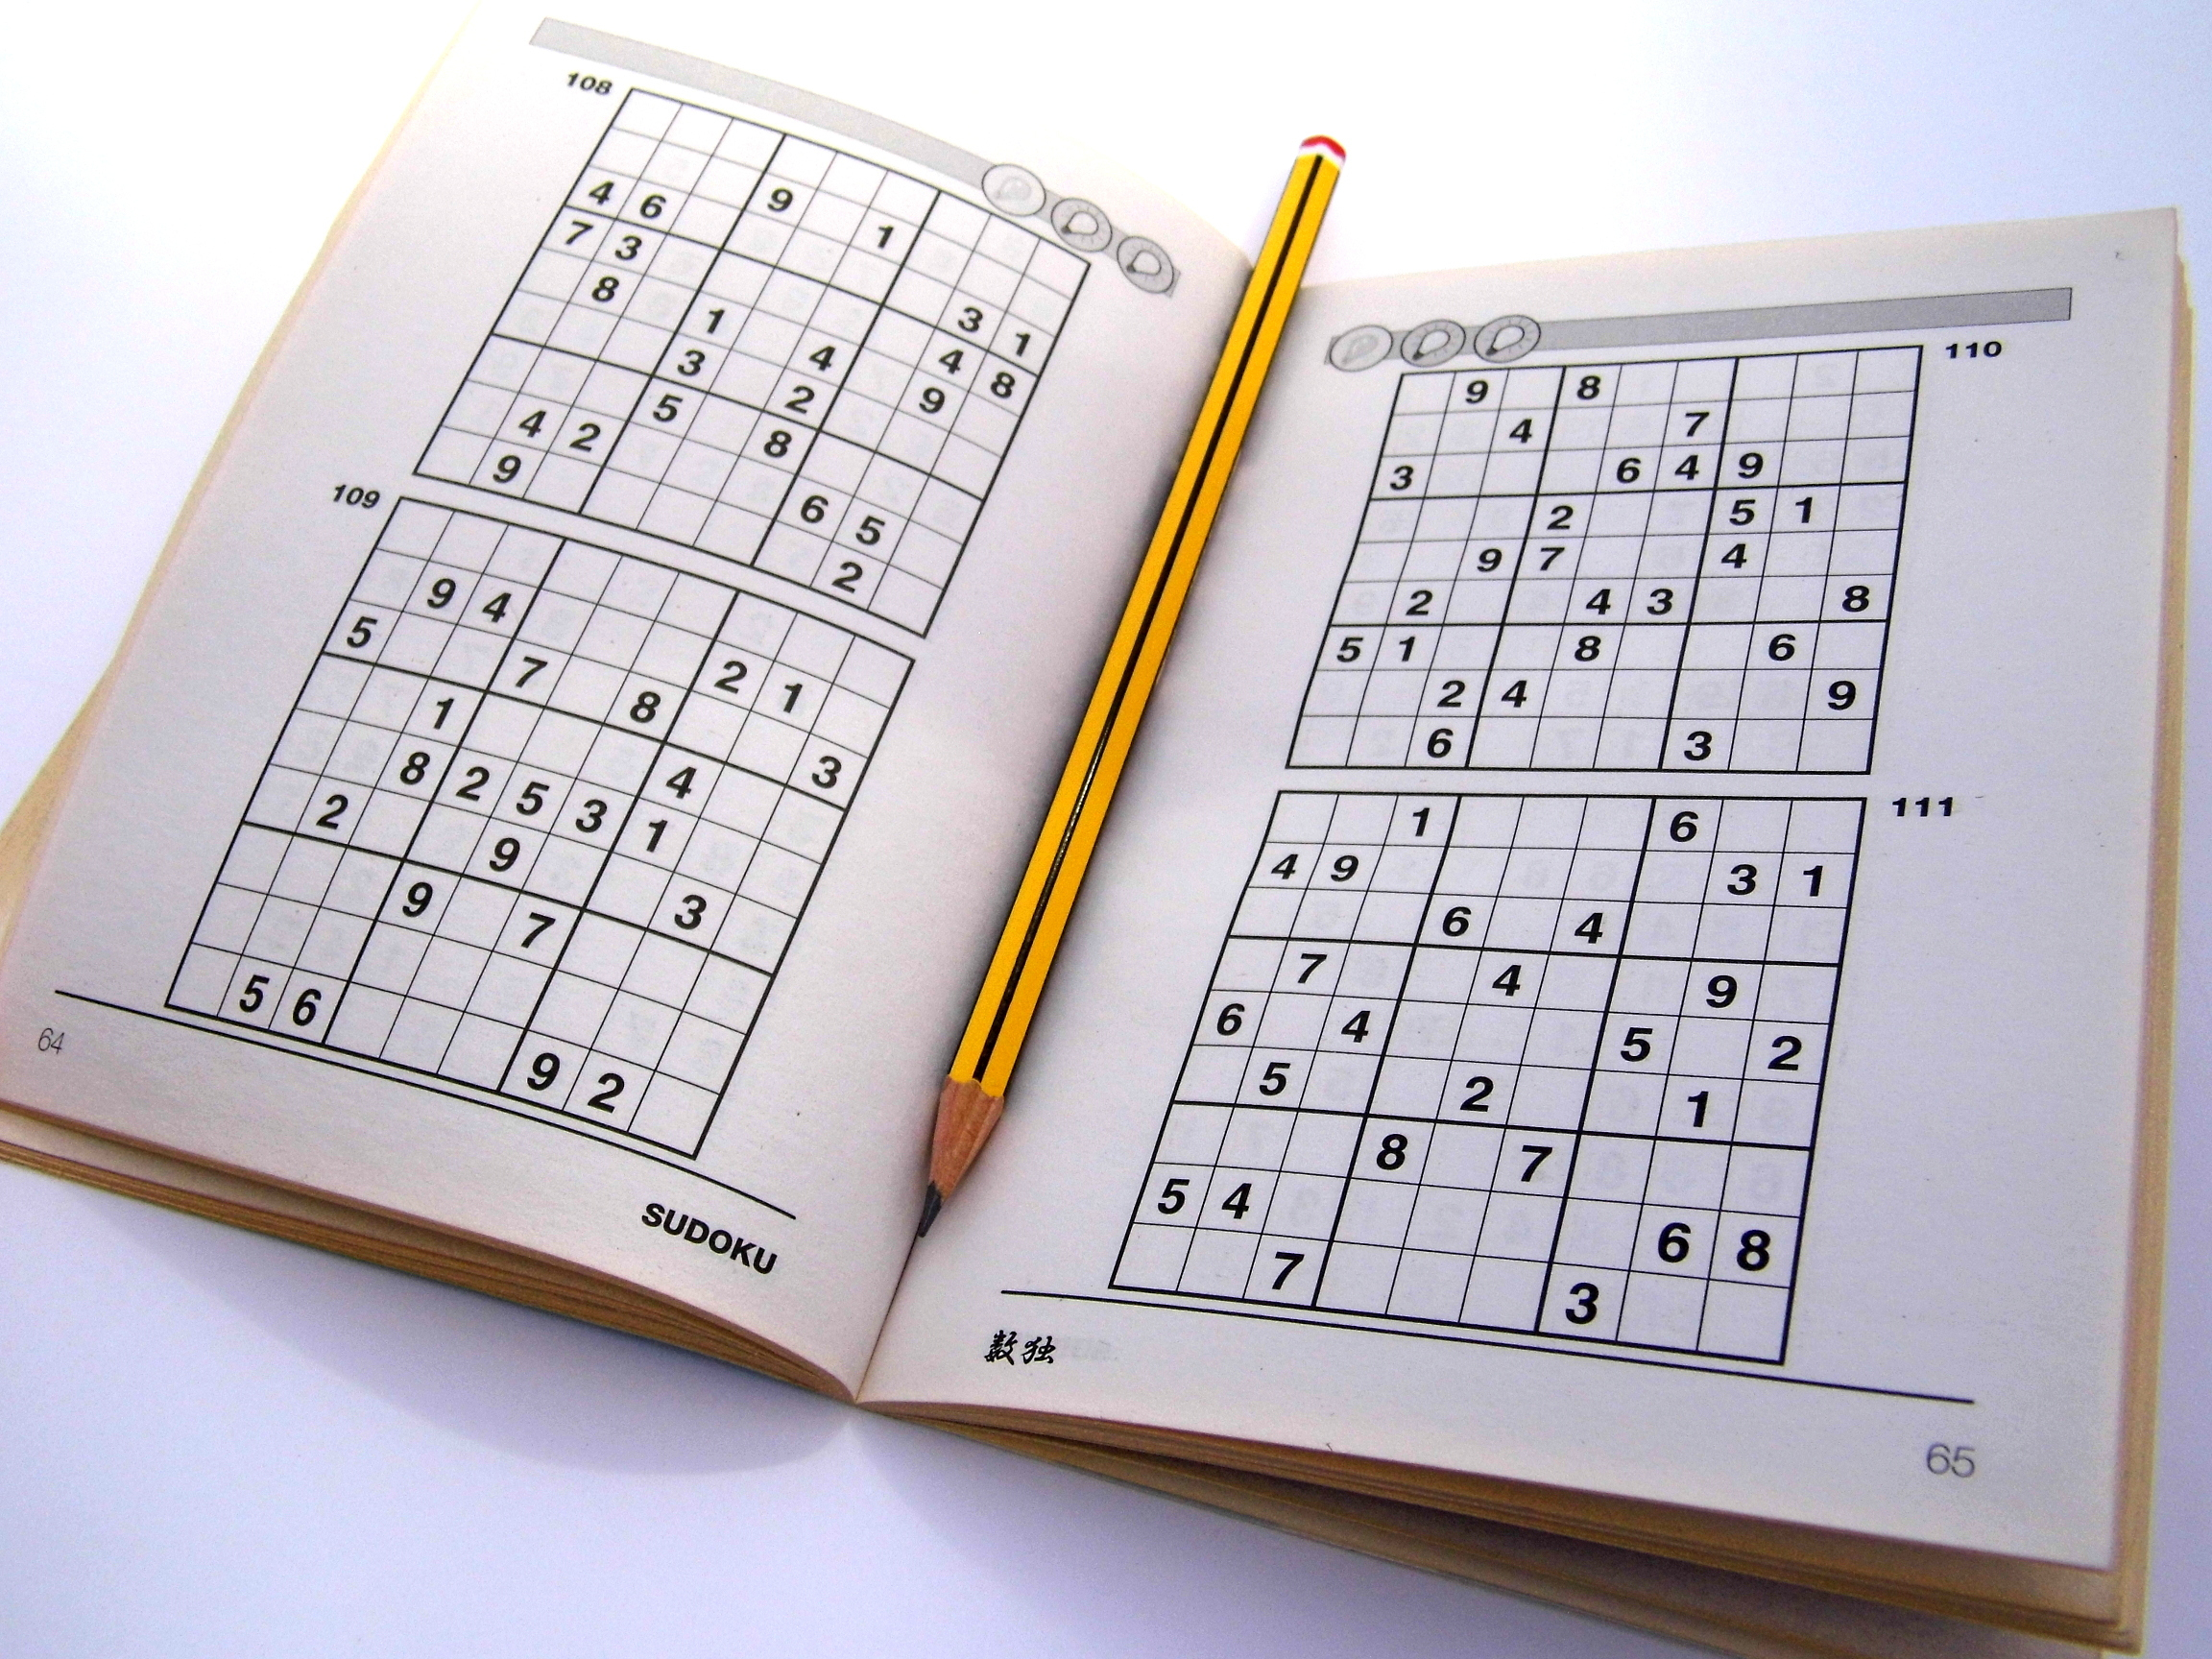 Free Sudoku Puzzles – Free Sudoku Puzzles From Easy To Evil Level - Printable Sudoku Puzzles 8 Per Page